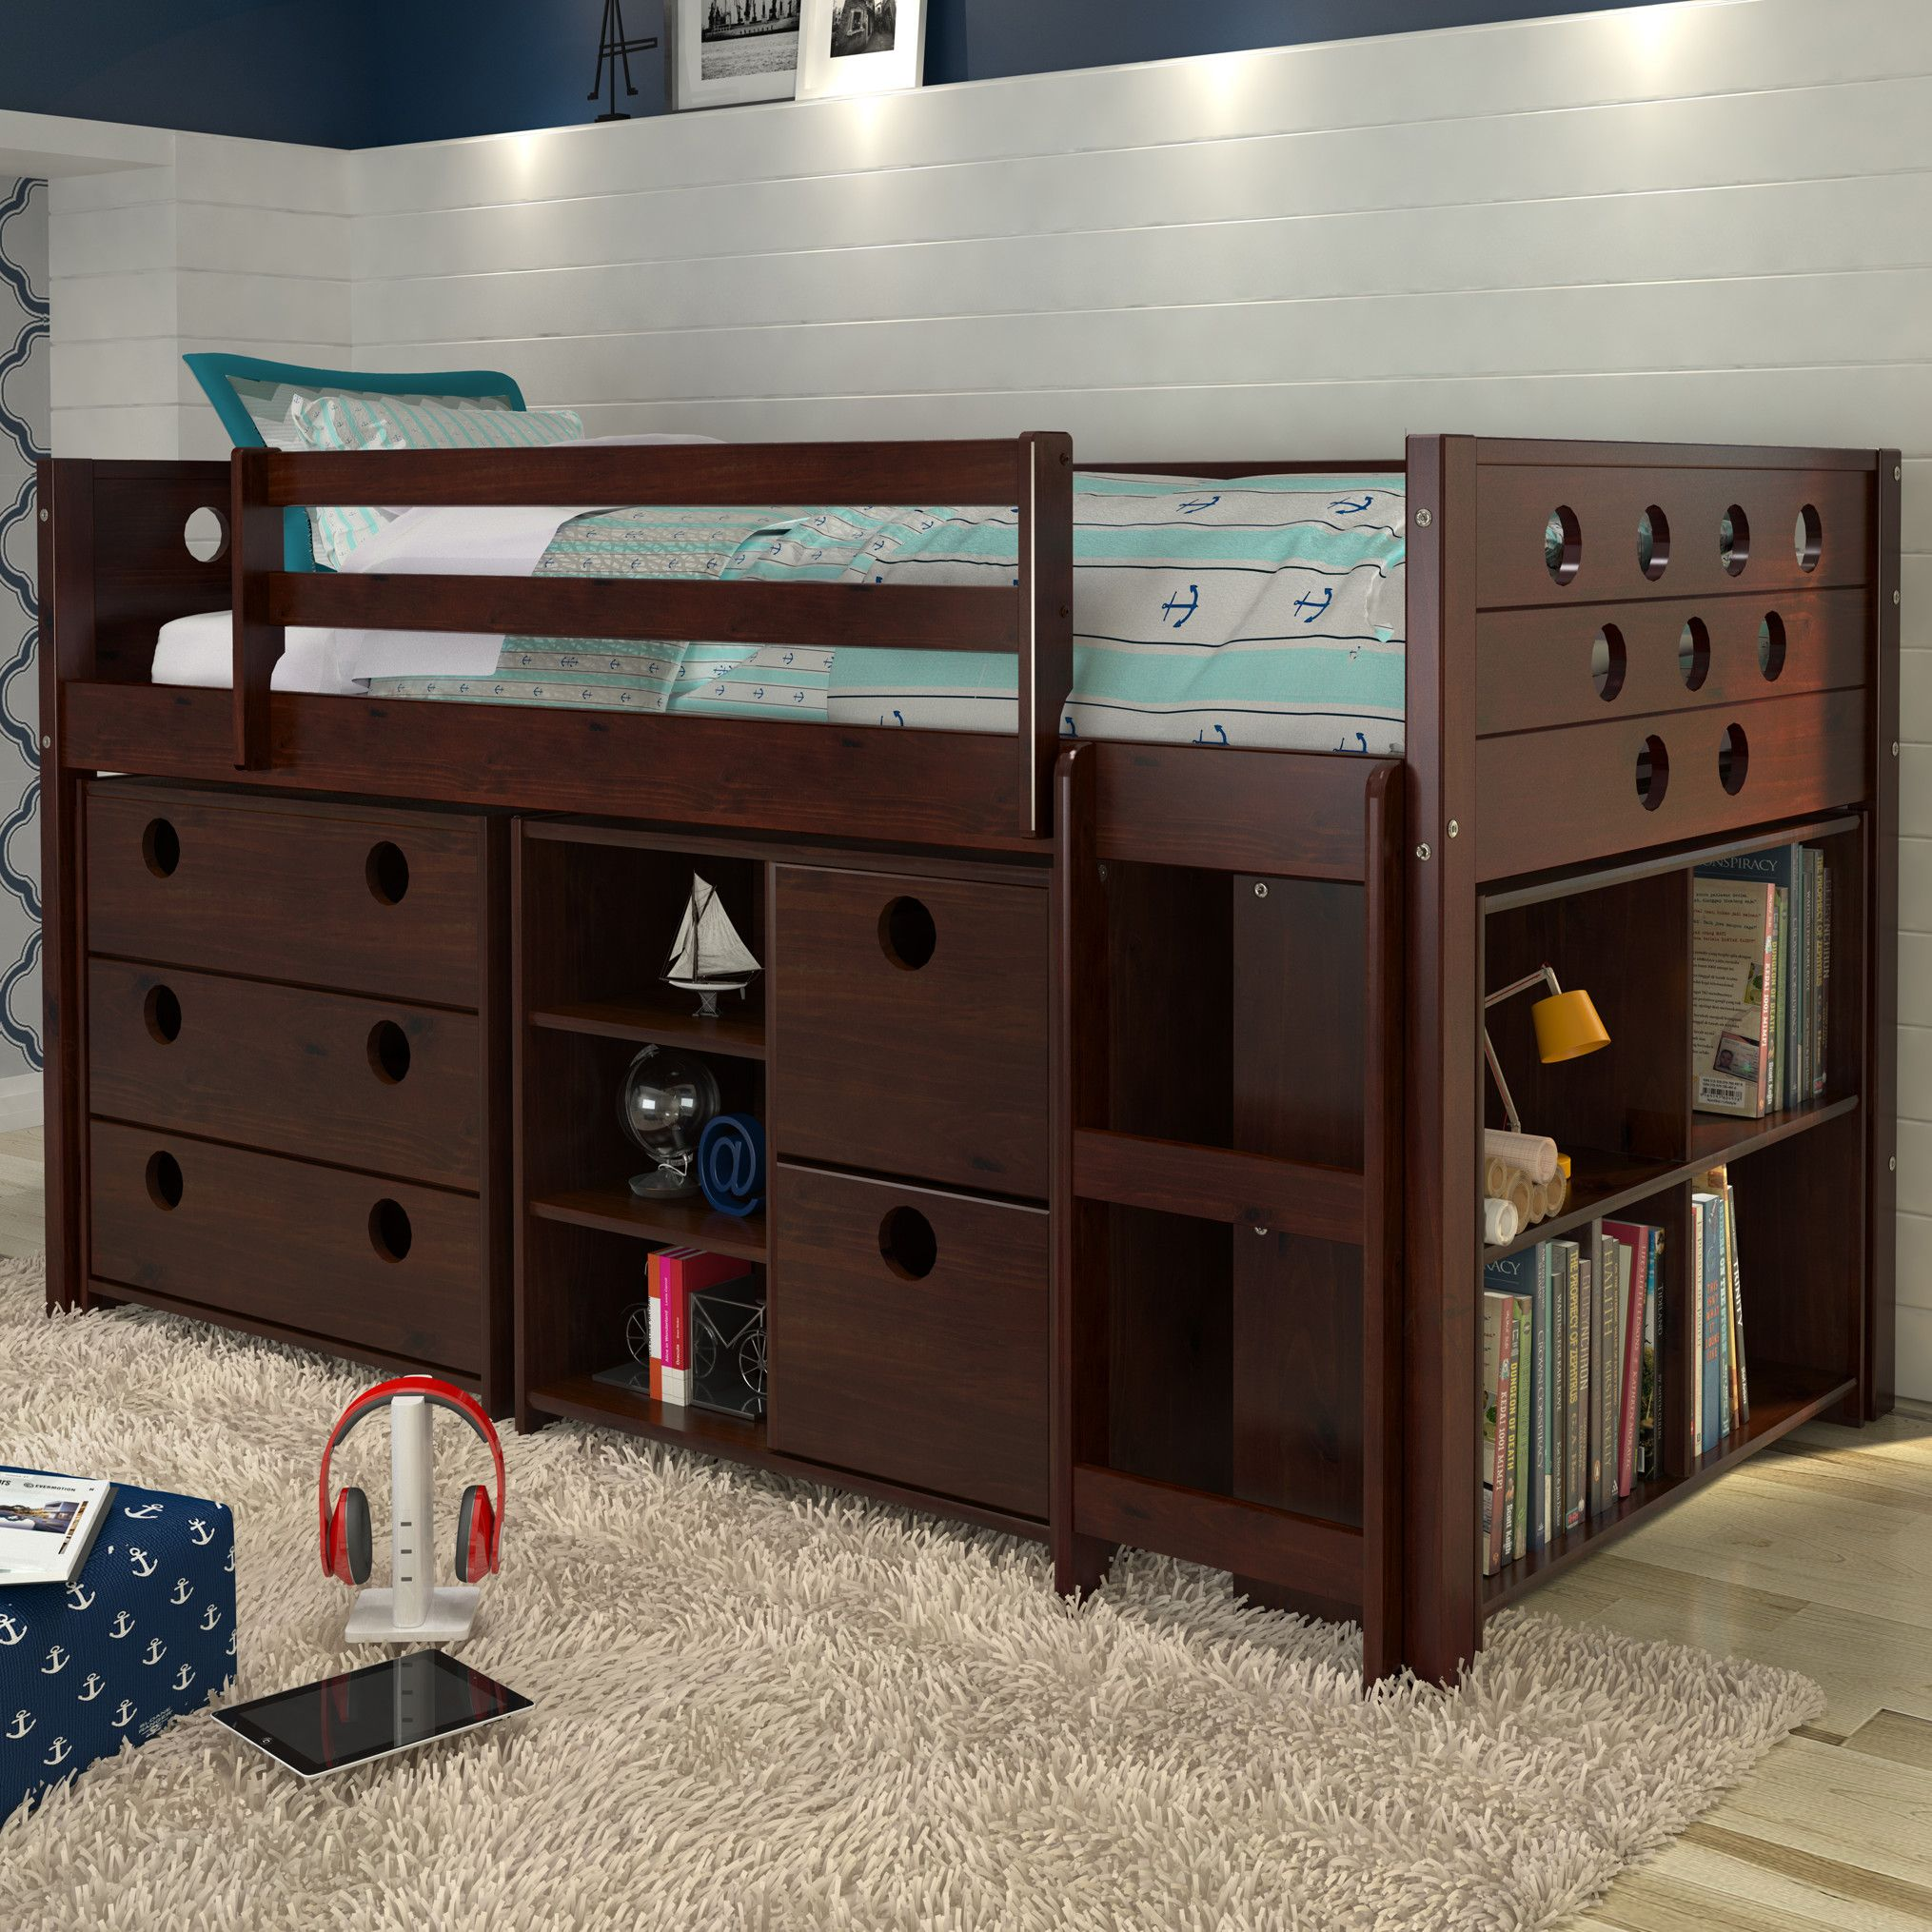 Loft bedroom storage ideas  Circles Twin Loft Bed with Storage